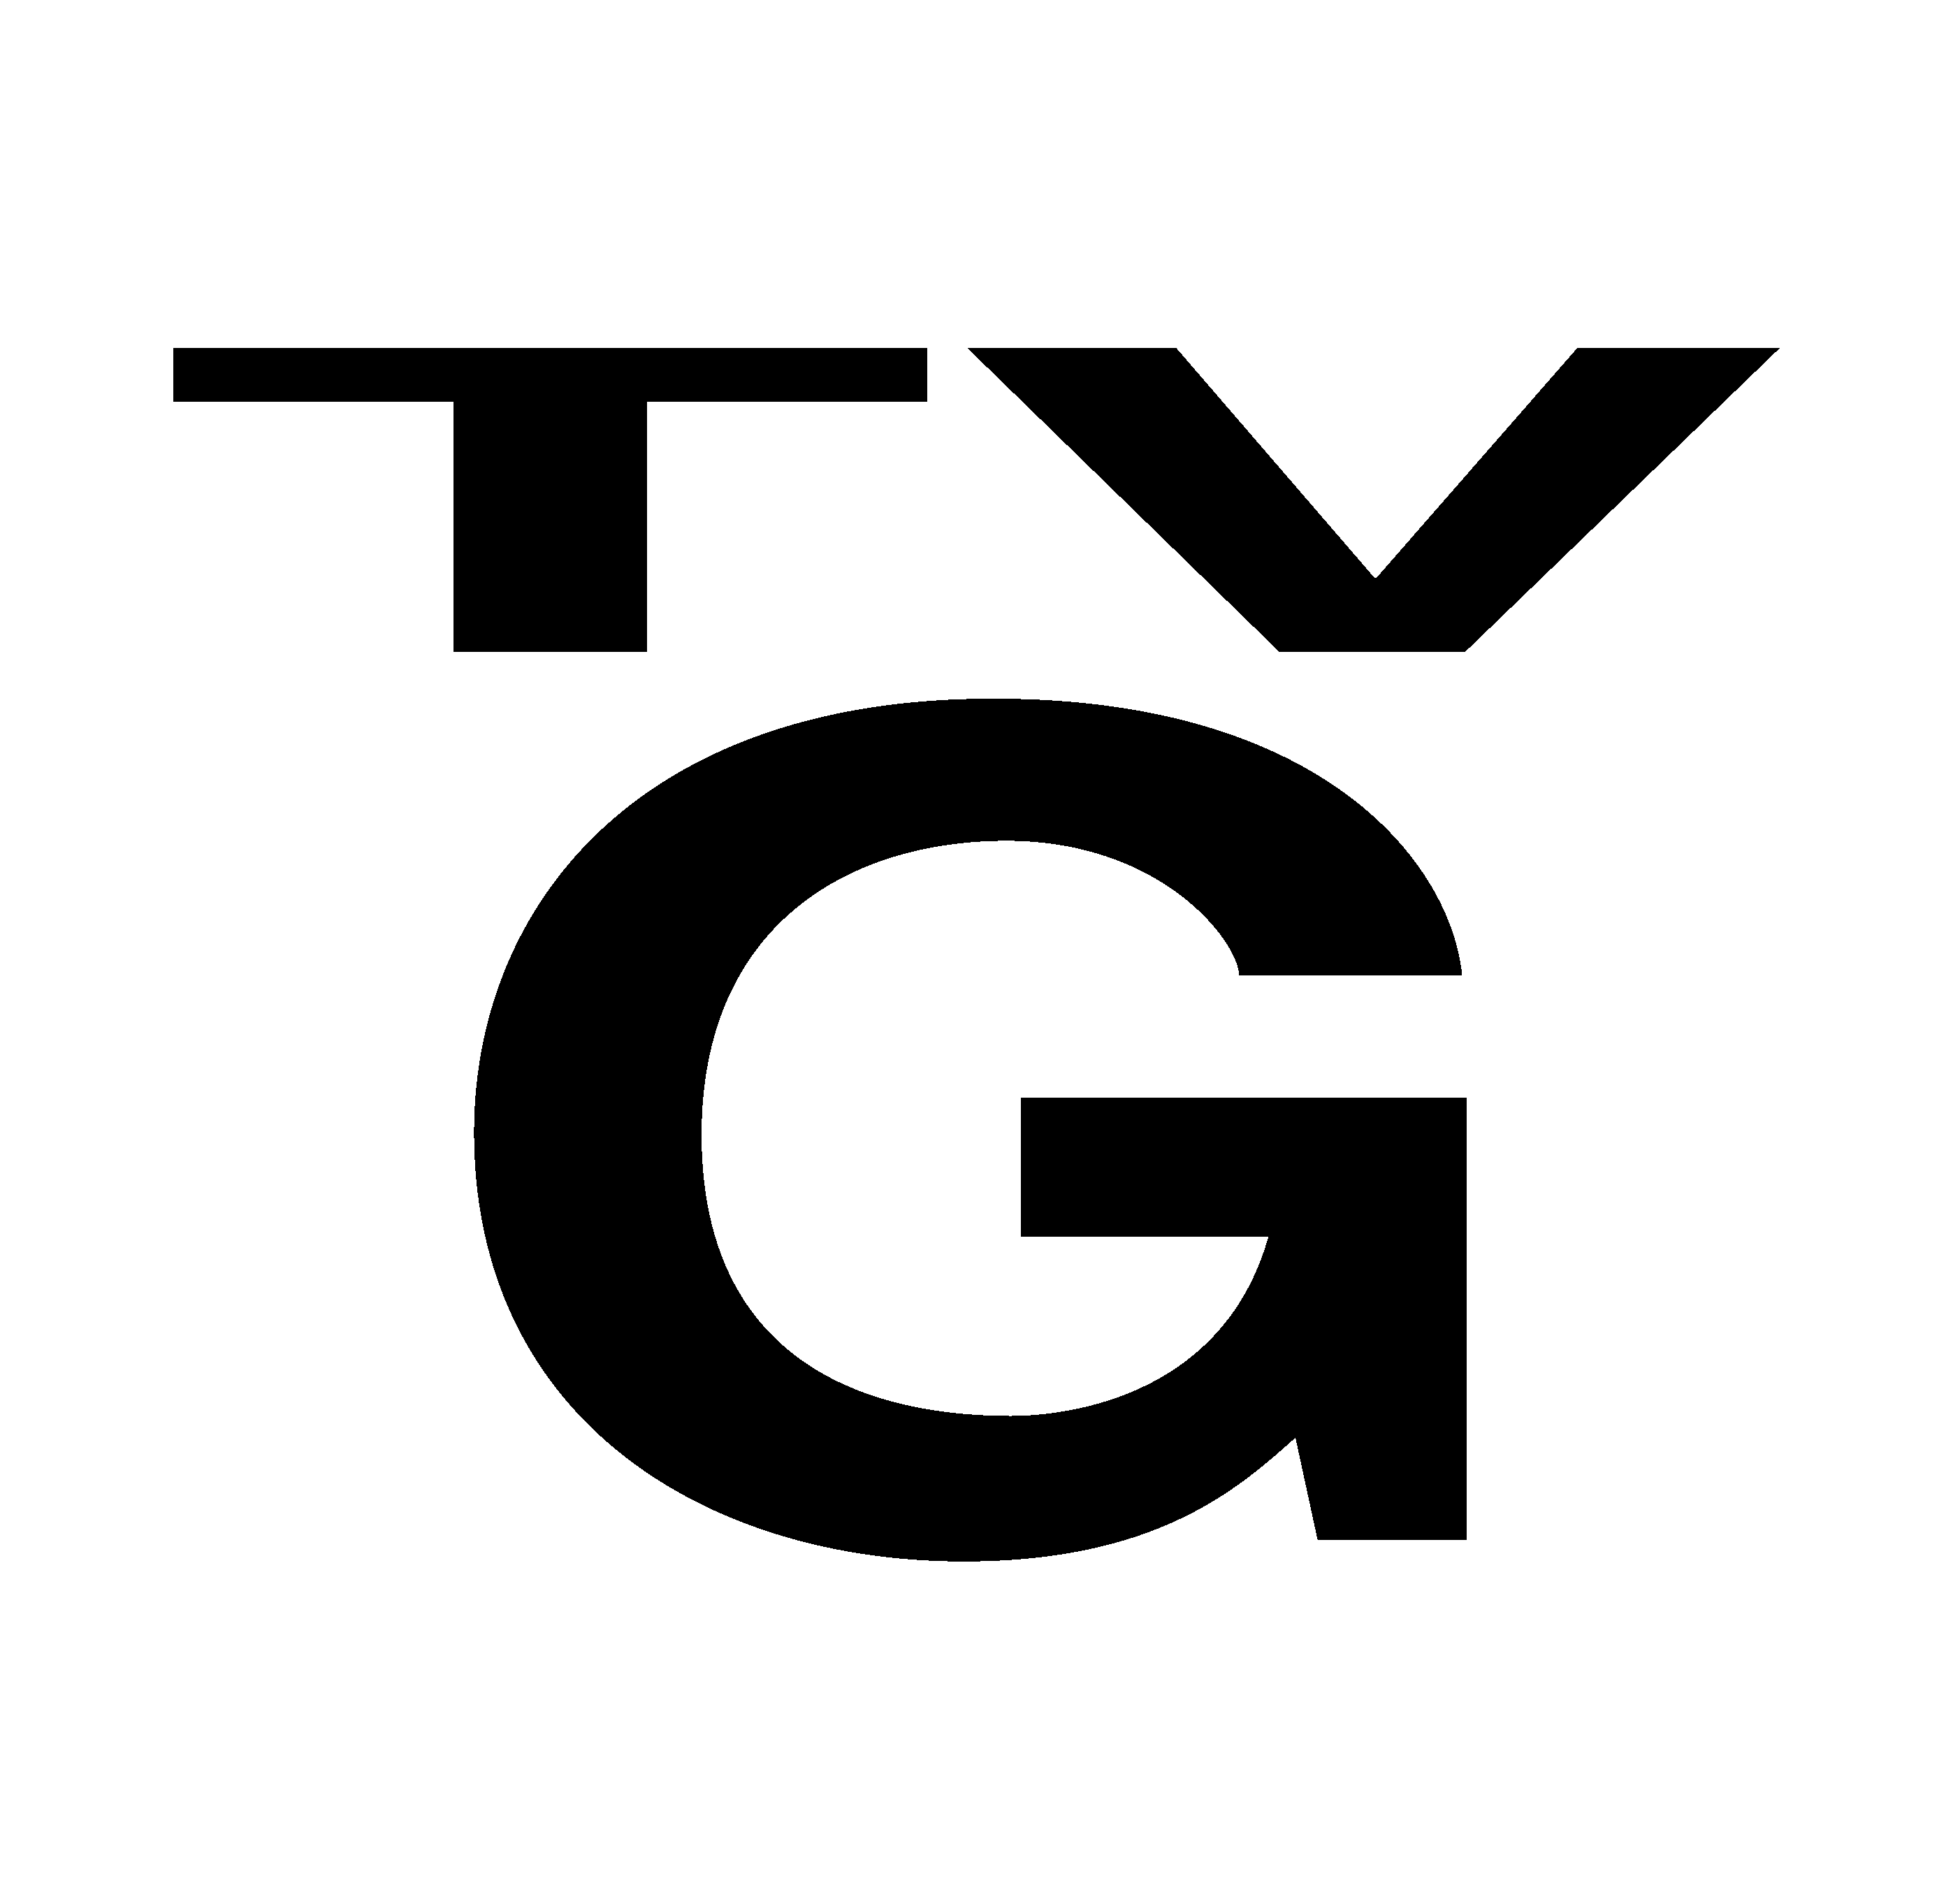 File:White TV-G icon.png - Wikimedia Commons